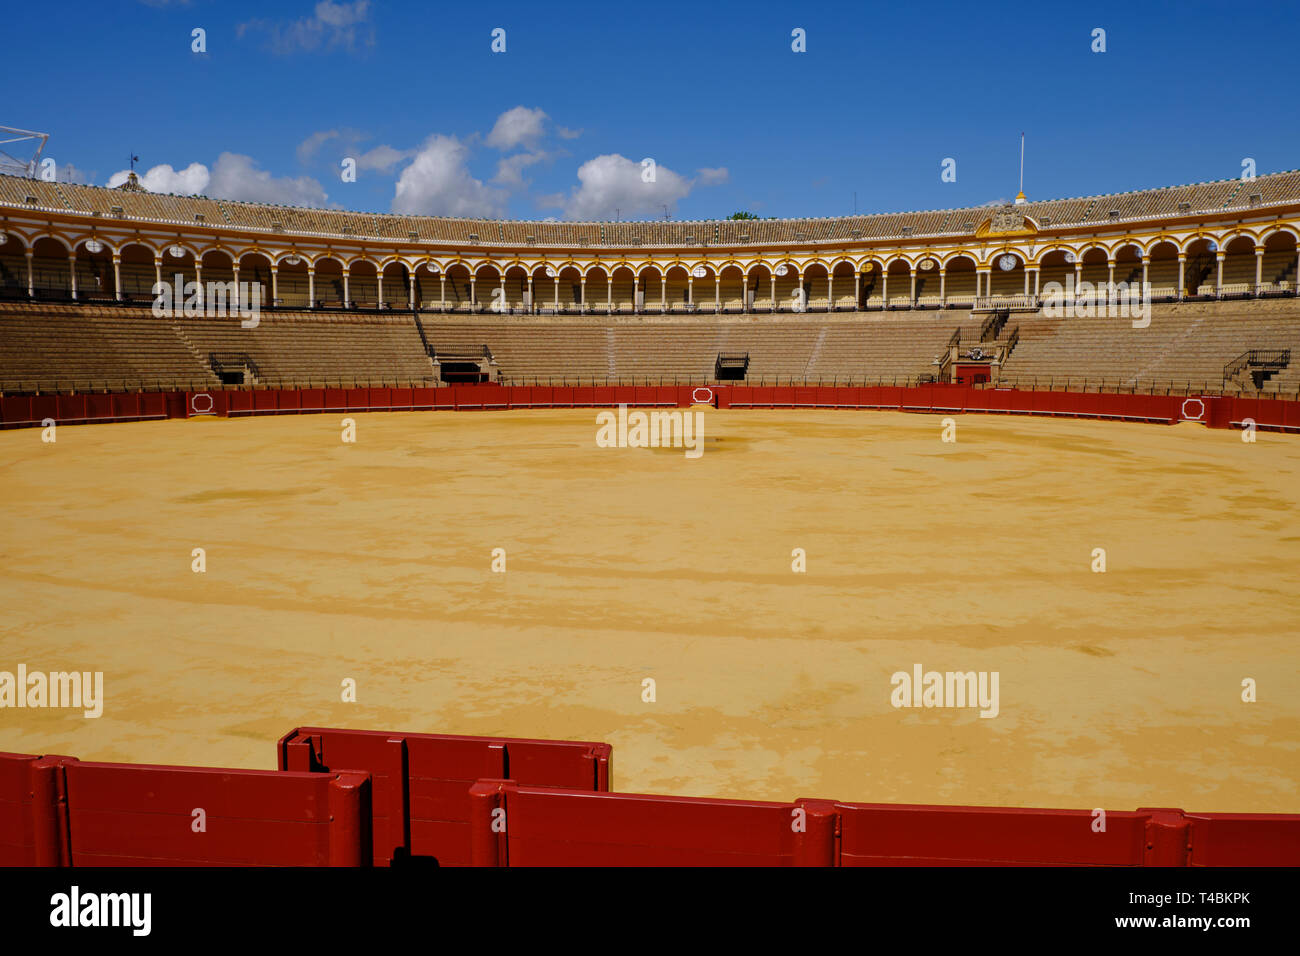 April 2019 Bullfighting arena (plaza de toros) in Seville, Real Maestranza de Caballeria de Sevilla, Spain - Stock Image